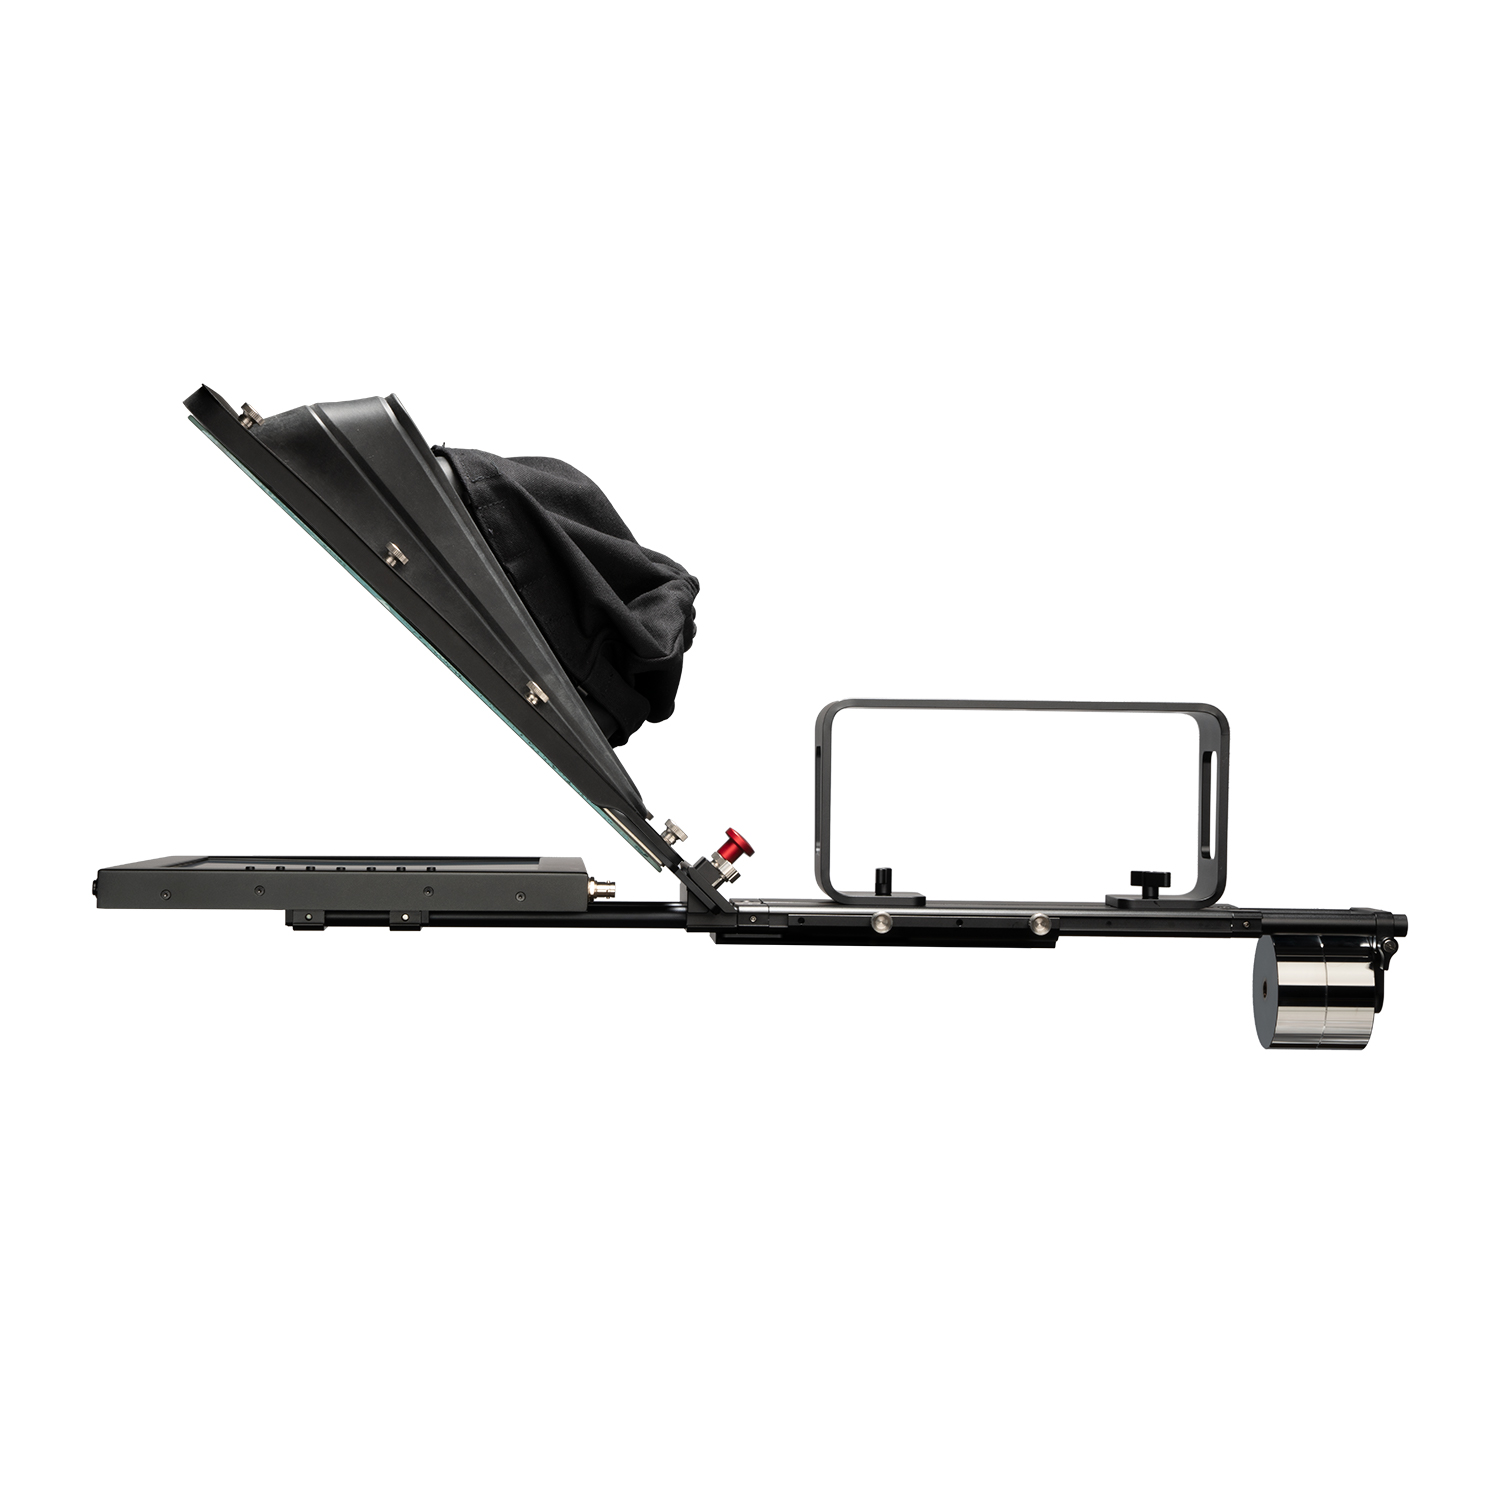 Ikan PROFESSIONAL 17″ HIGH BRIGHT BEAM SPLITTER TELEPROMPTER Pro Video Ikan